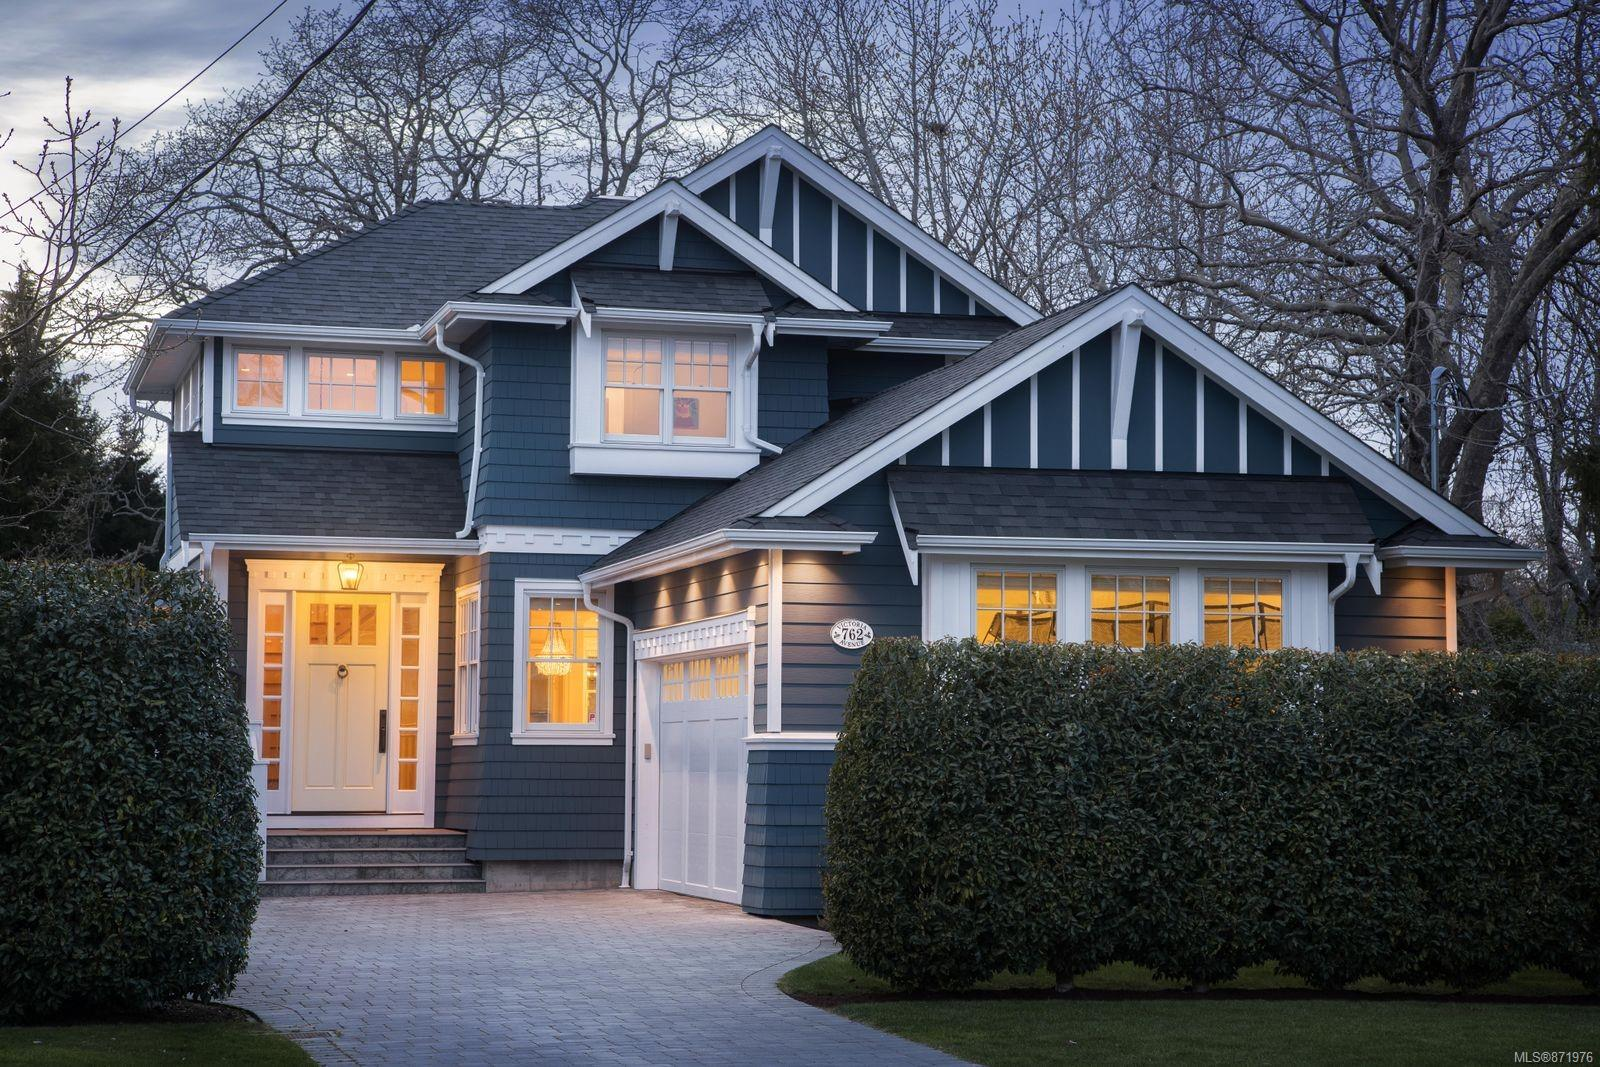 This stunning custom home is nestled in the heart of South Oak Bay, walking distance to Oak Bay Village, McNeil Bay and sought after public and private schools. The home has a West facing back yard that soaks the open concept main level in natural light all year round. No details have been overlooked and this home has all you'll need and more; beautiful wood floors, custom face-framed cabinetry, breakfast nook, coffered ceiling over the dining area, a butler pantry and den for those working from home. Upstairs, you will find a spacious primary bedroom and ensuite with soaker tub overlooking the rear garden. Second and third bedrooms are thoughtfully designed with Jack and Jill bathroom, built in desks, window seats, storage drawers and walk-in closets. The main level is not the only space to entertain as you'll find a home theatre and wet bar in the lower level of the home as well as a gym and extra bedroom.